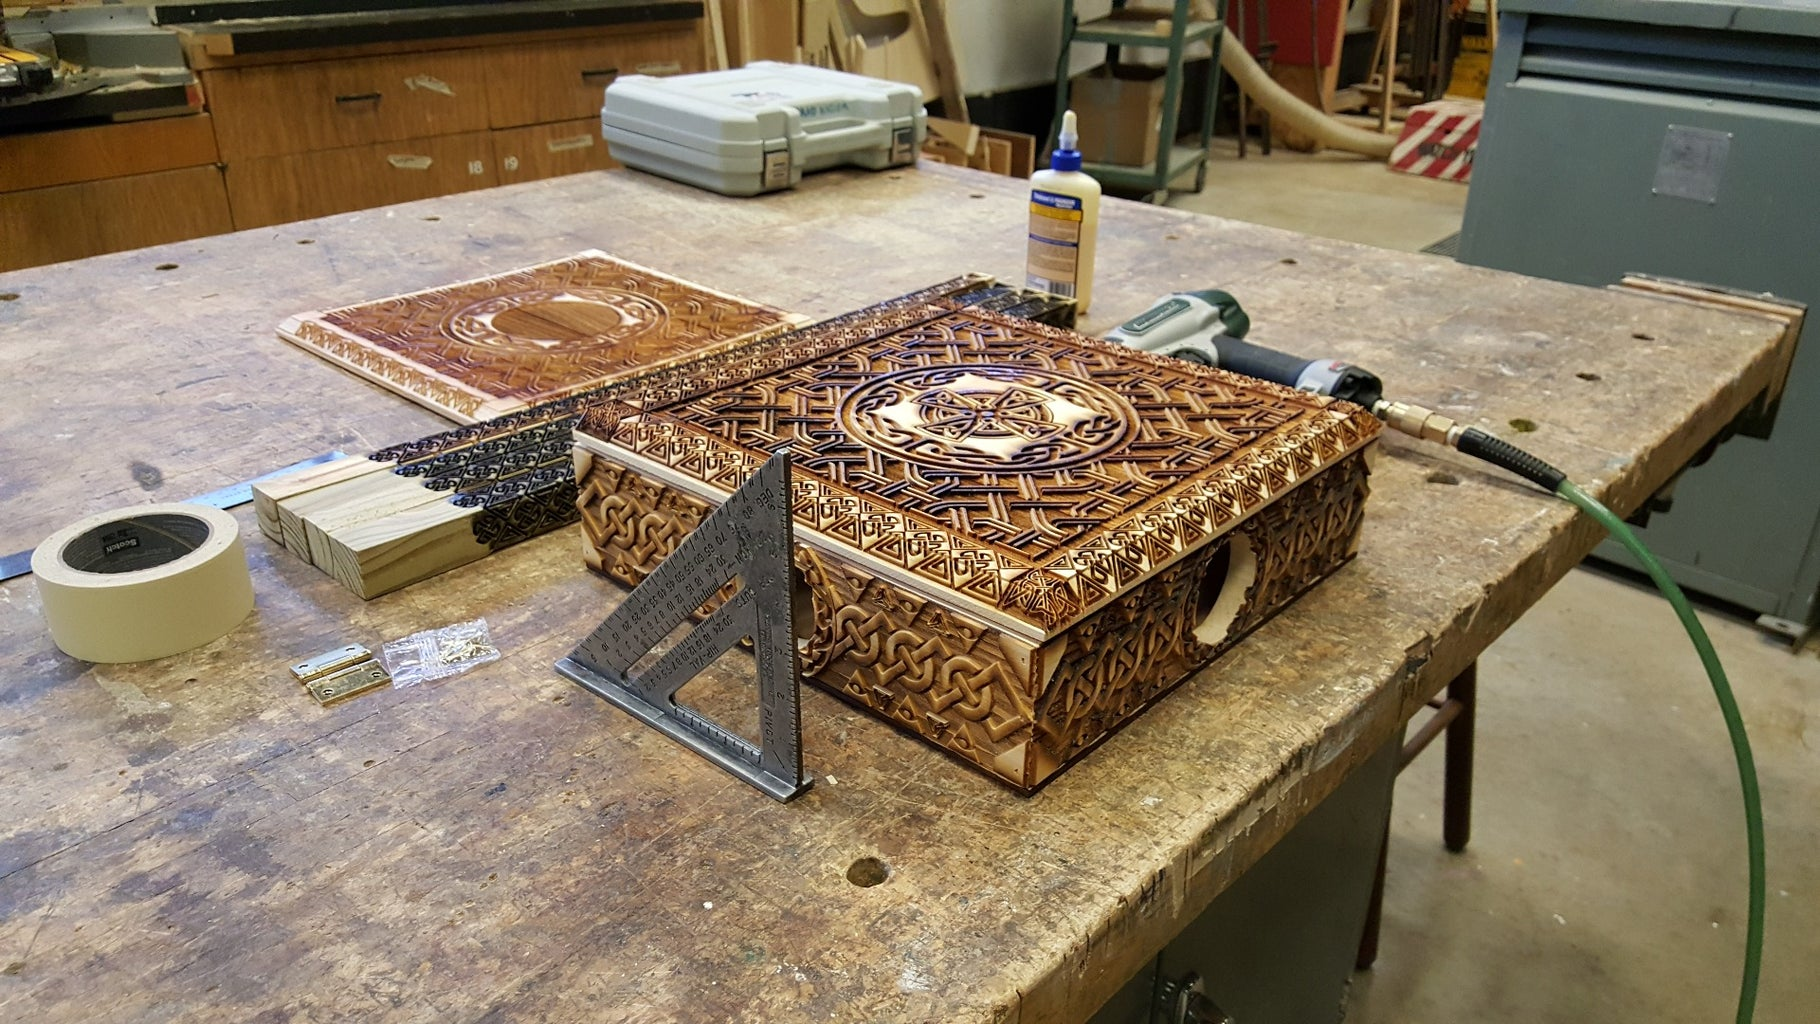 Engraving the Wood